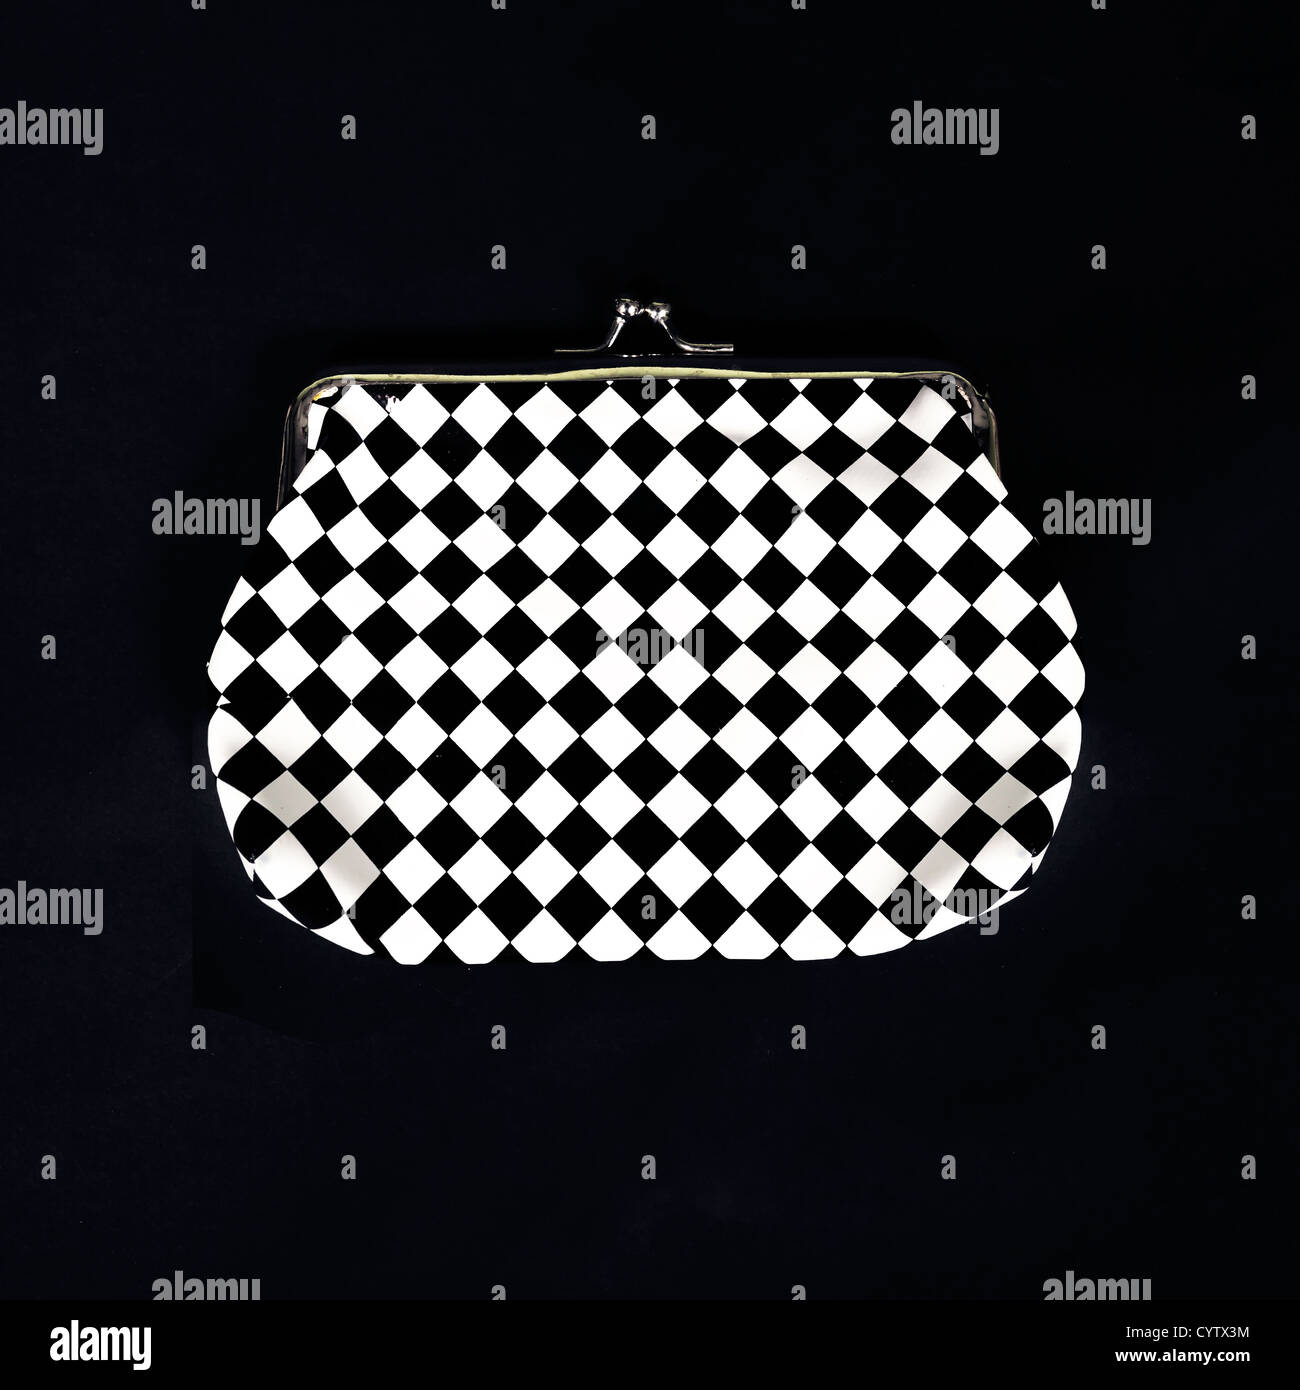 a checkered purse in black and white - Stock Image